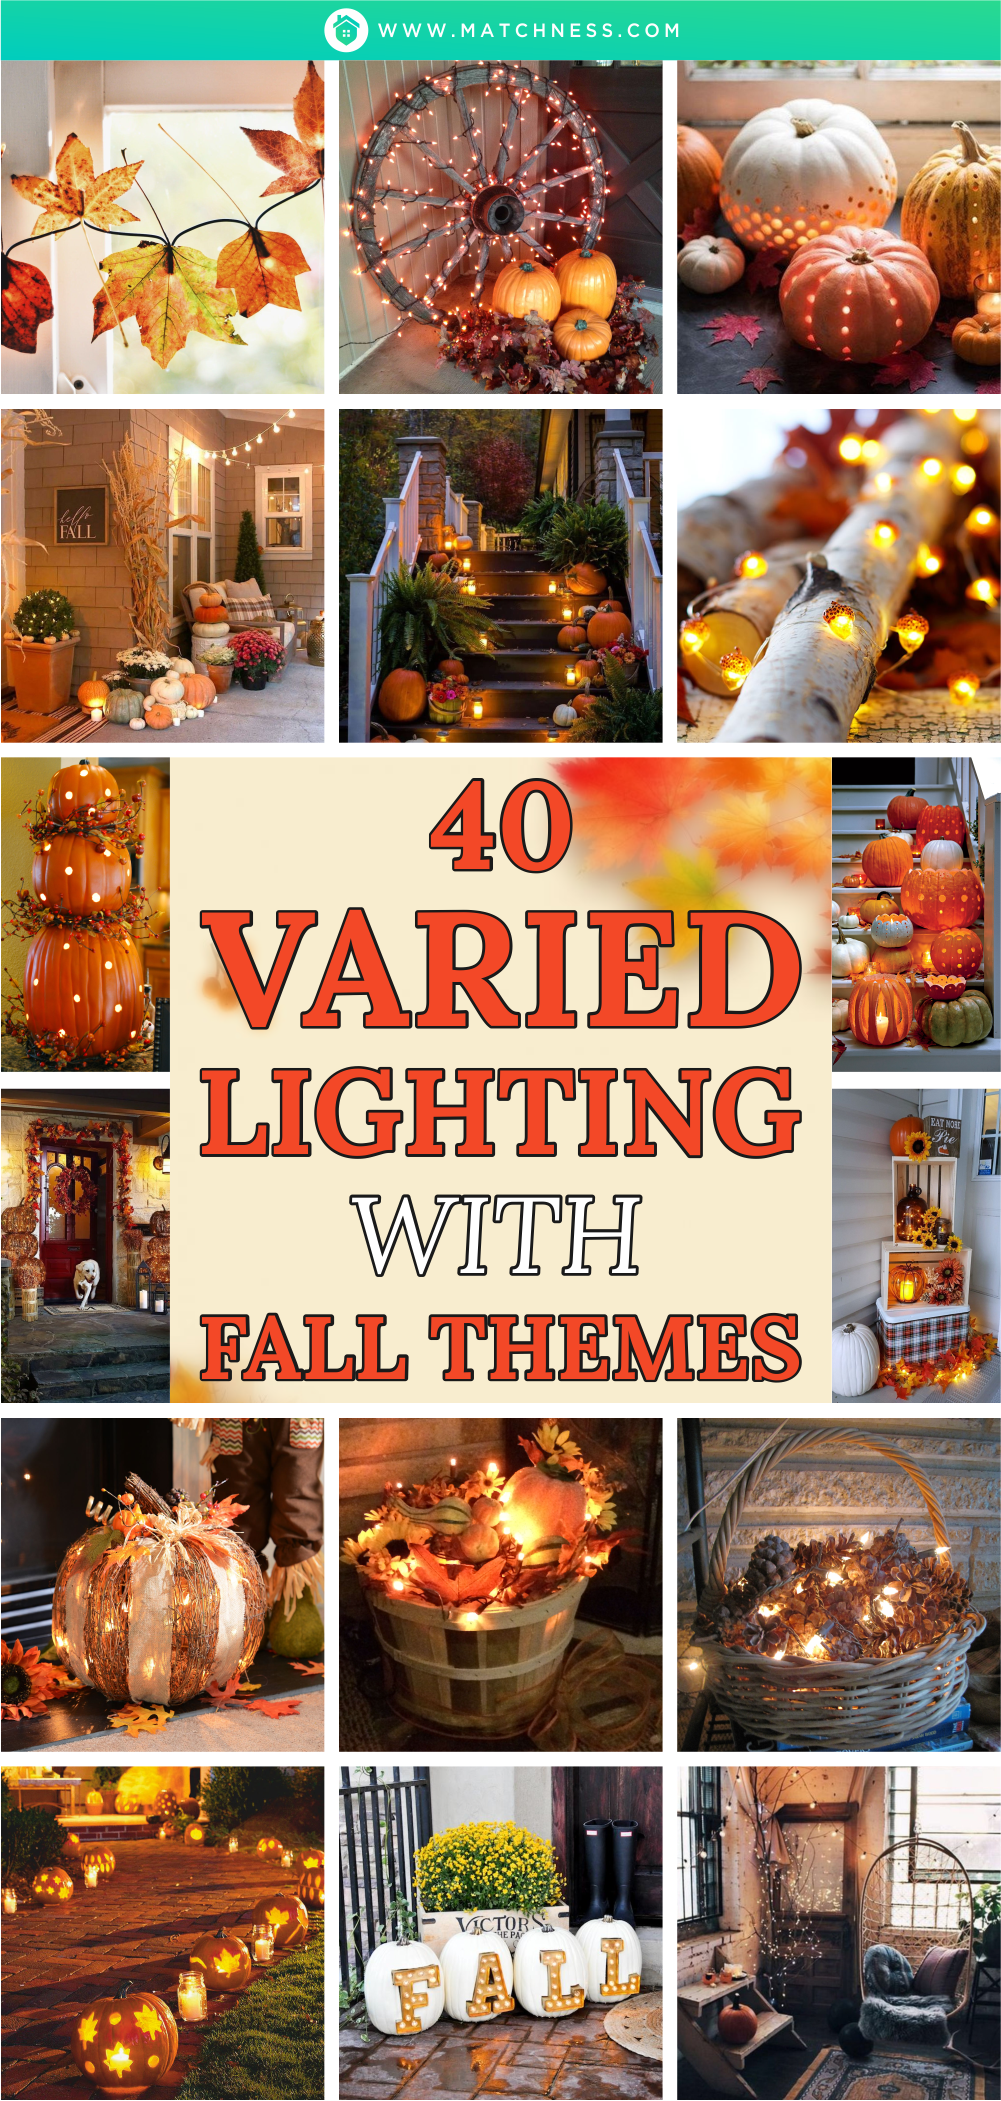 40-varied-lighting-with-fall-themes1